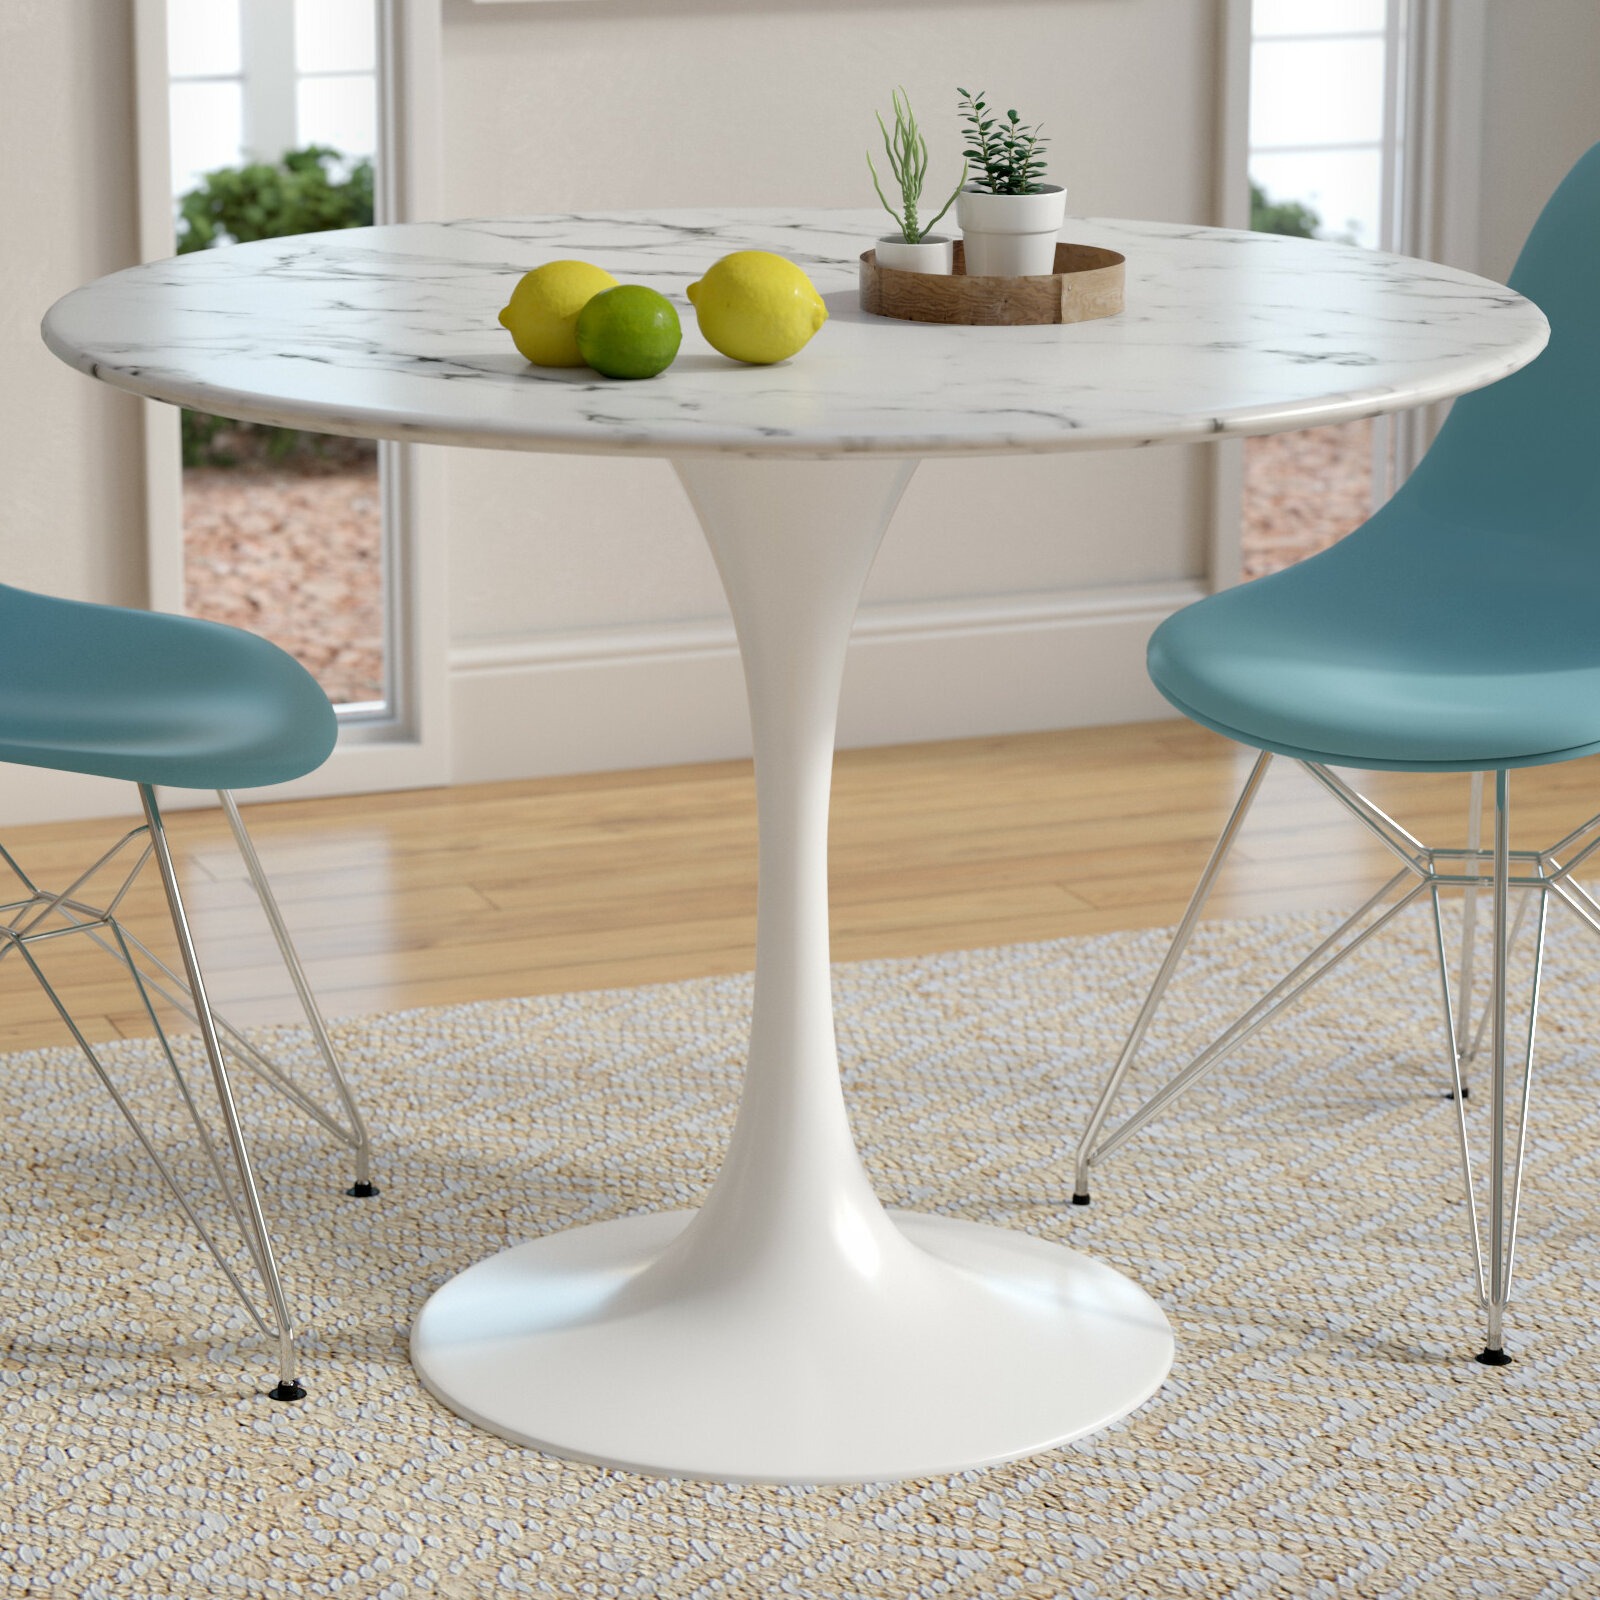 Langley street julien artificial marble dining table reviews wayfair ca